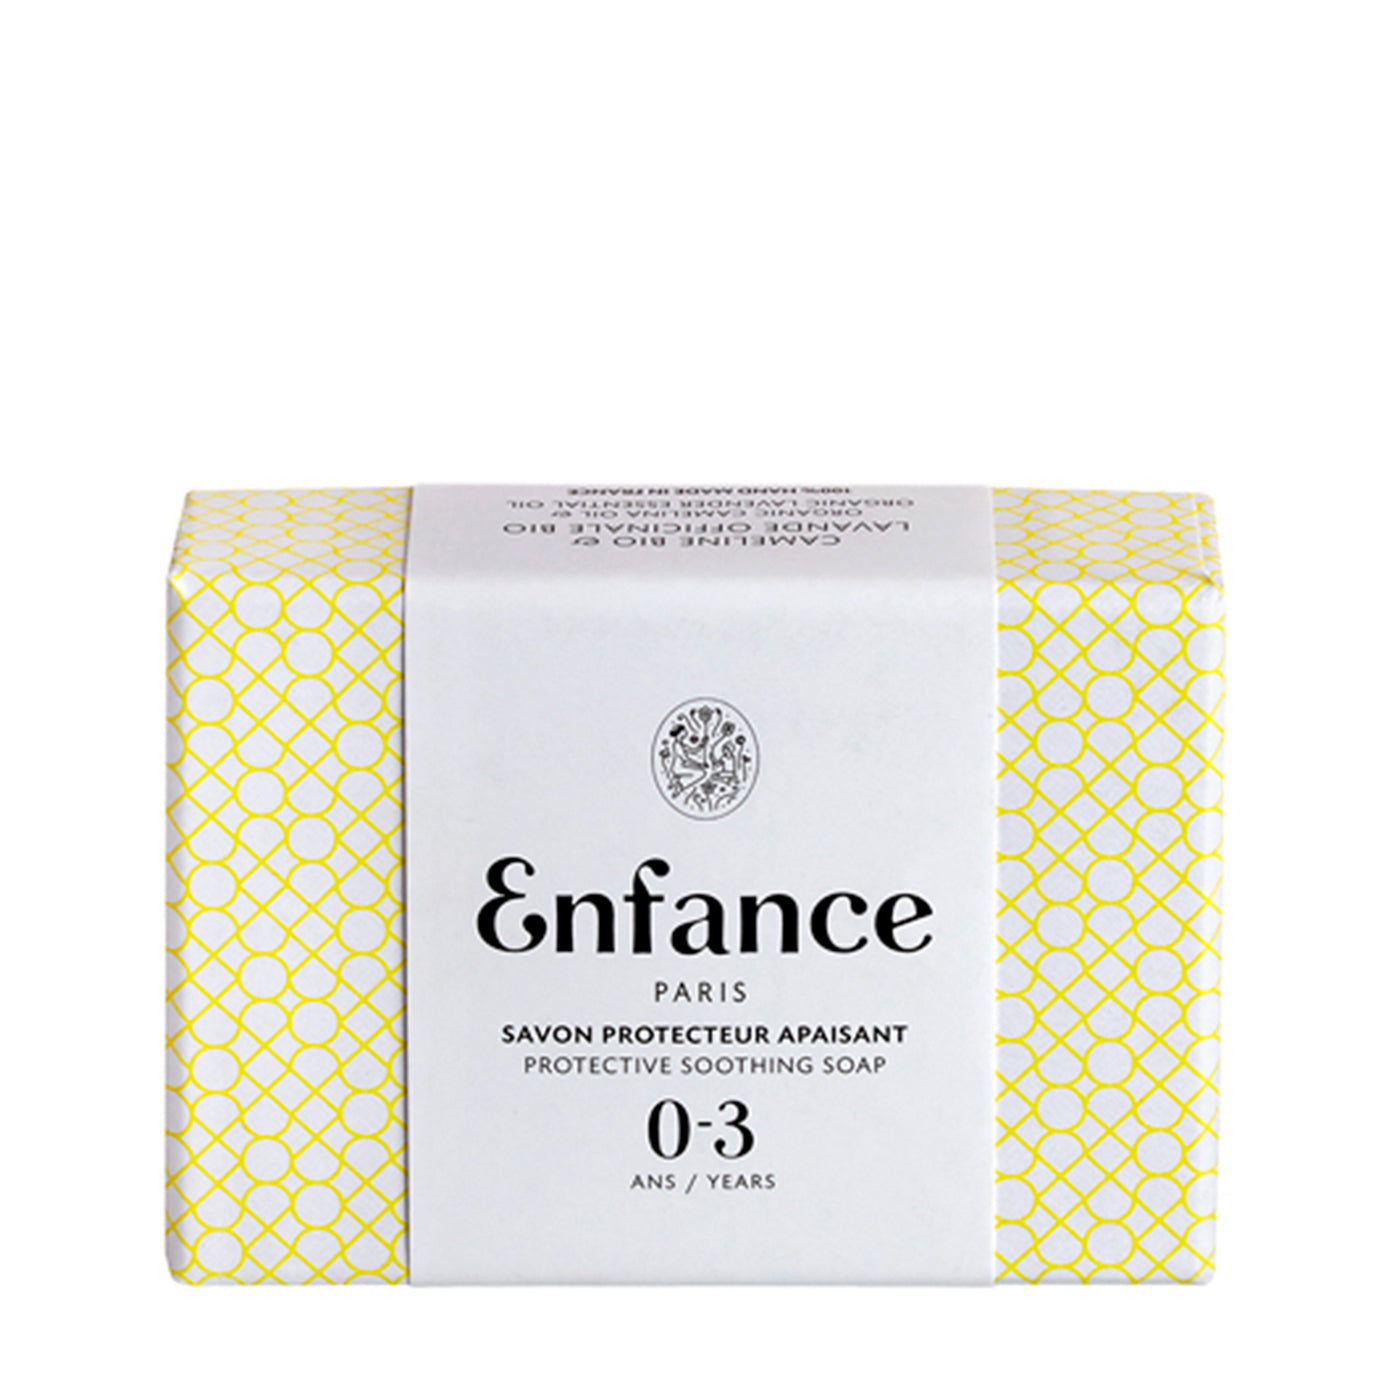 Enfance Paris Protective Soothing Soap 0-3 Years